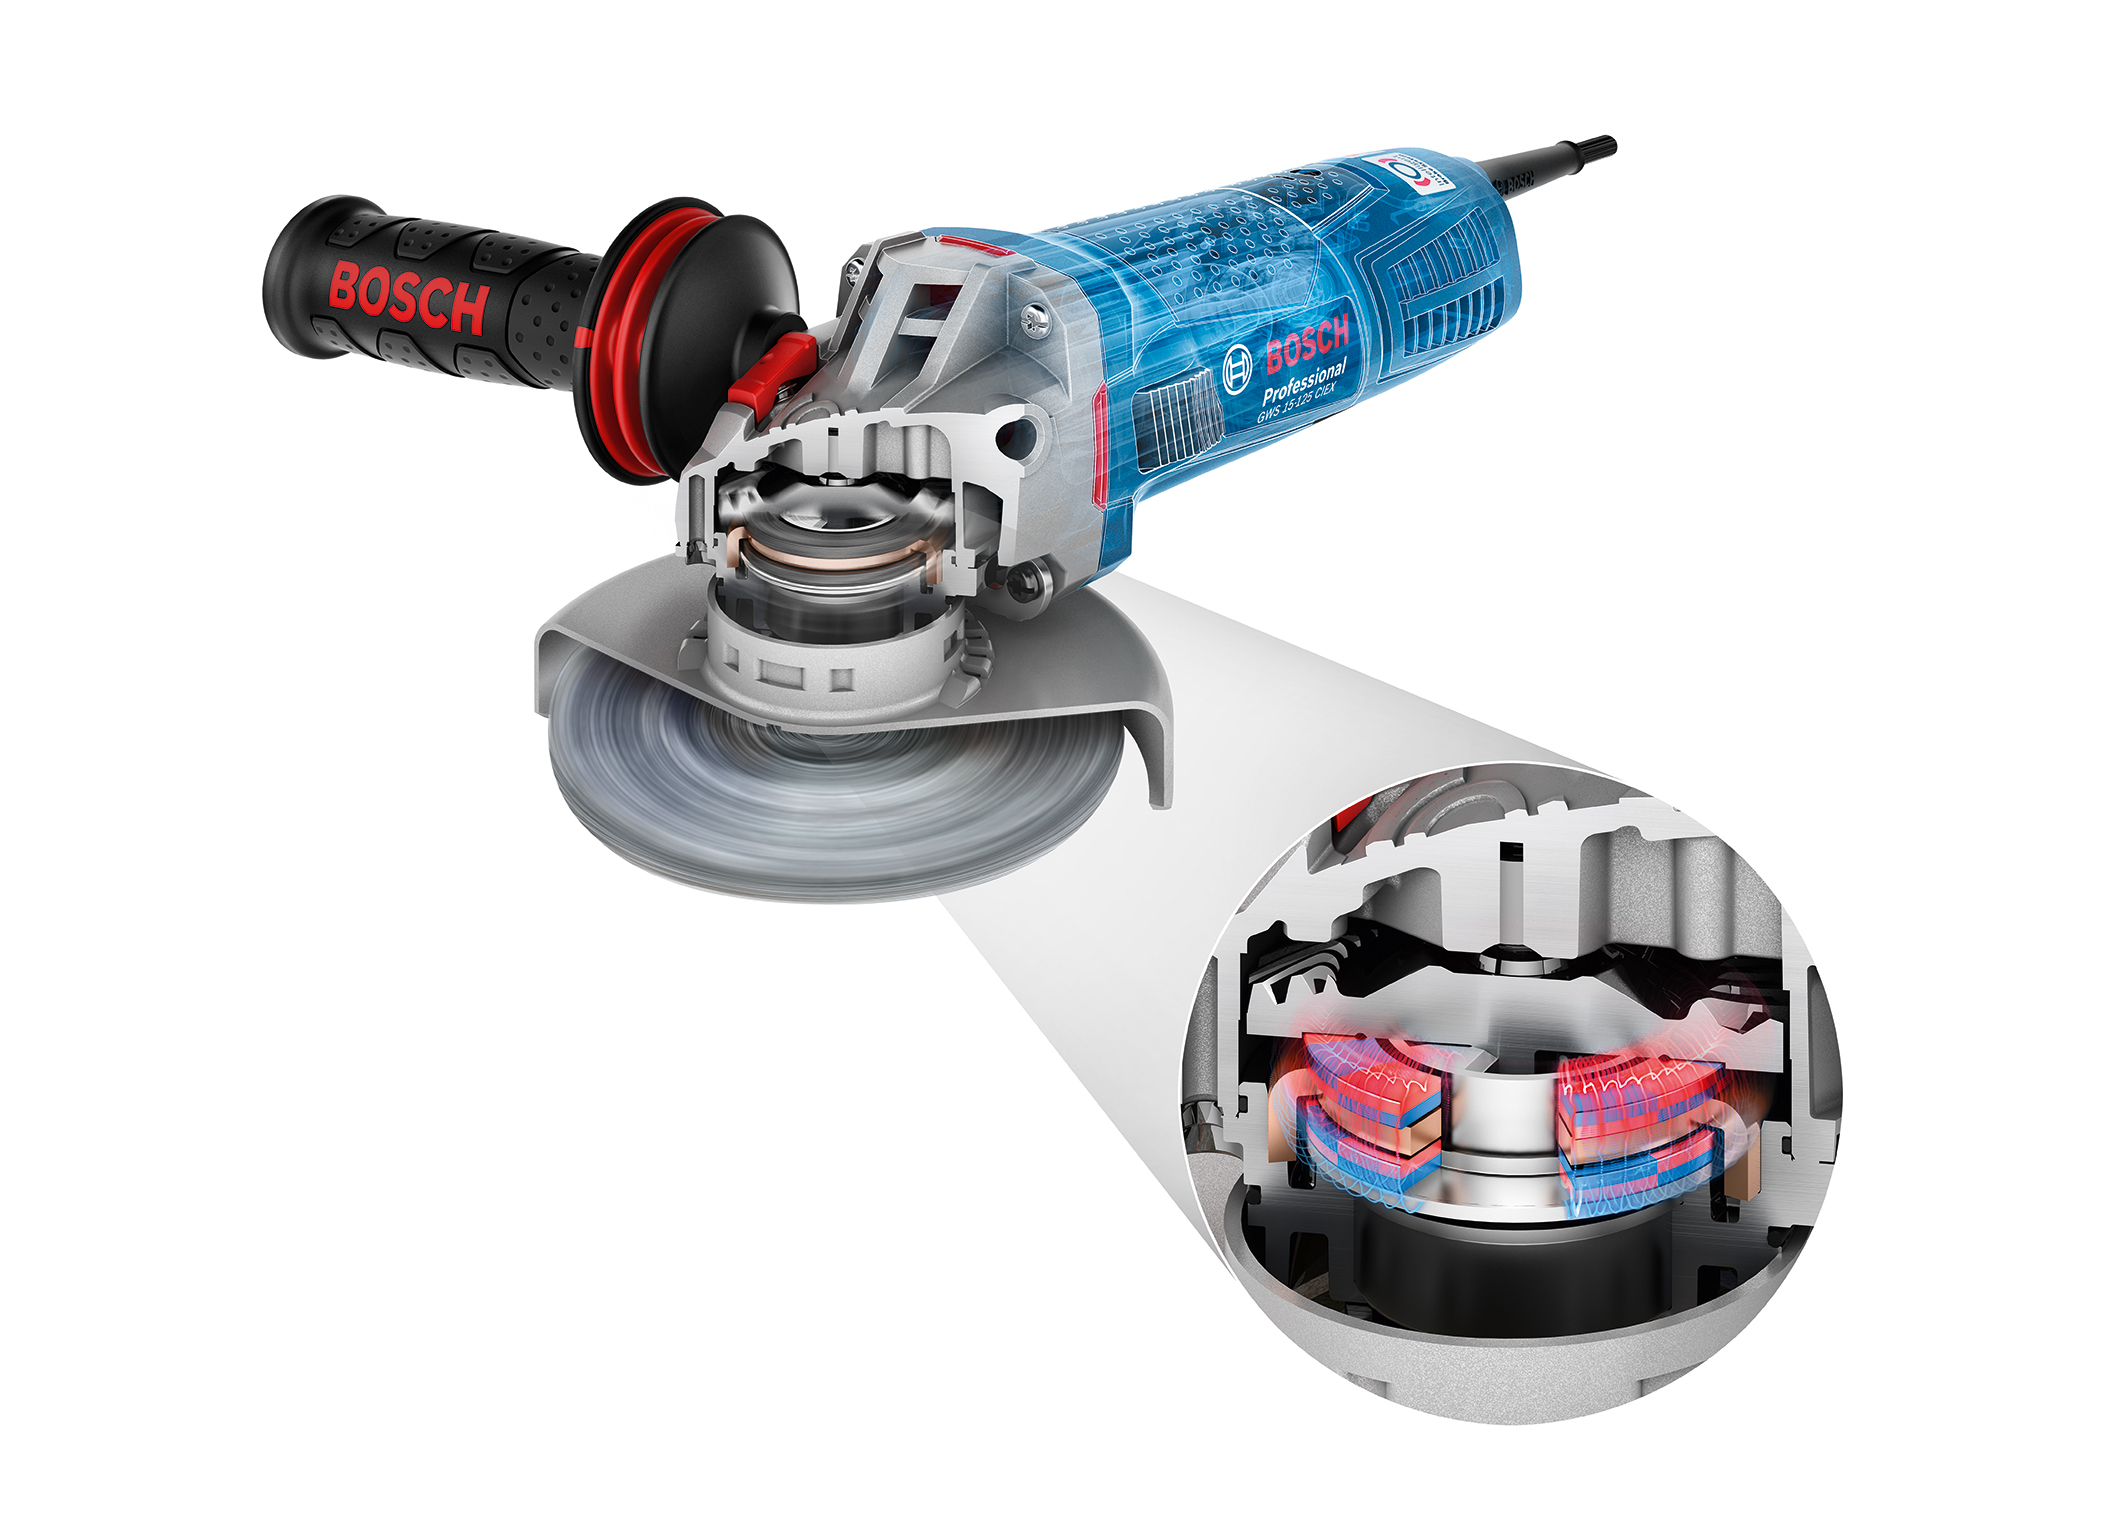 Bosch professional angle grinders with brake system - Bosch